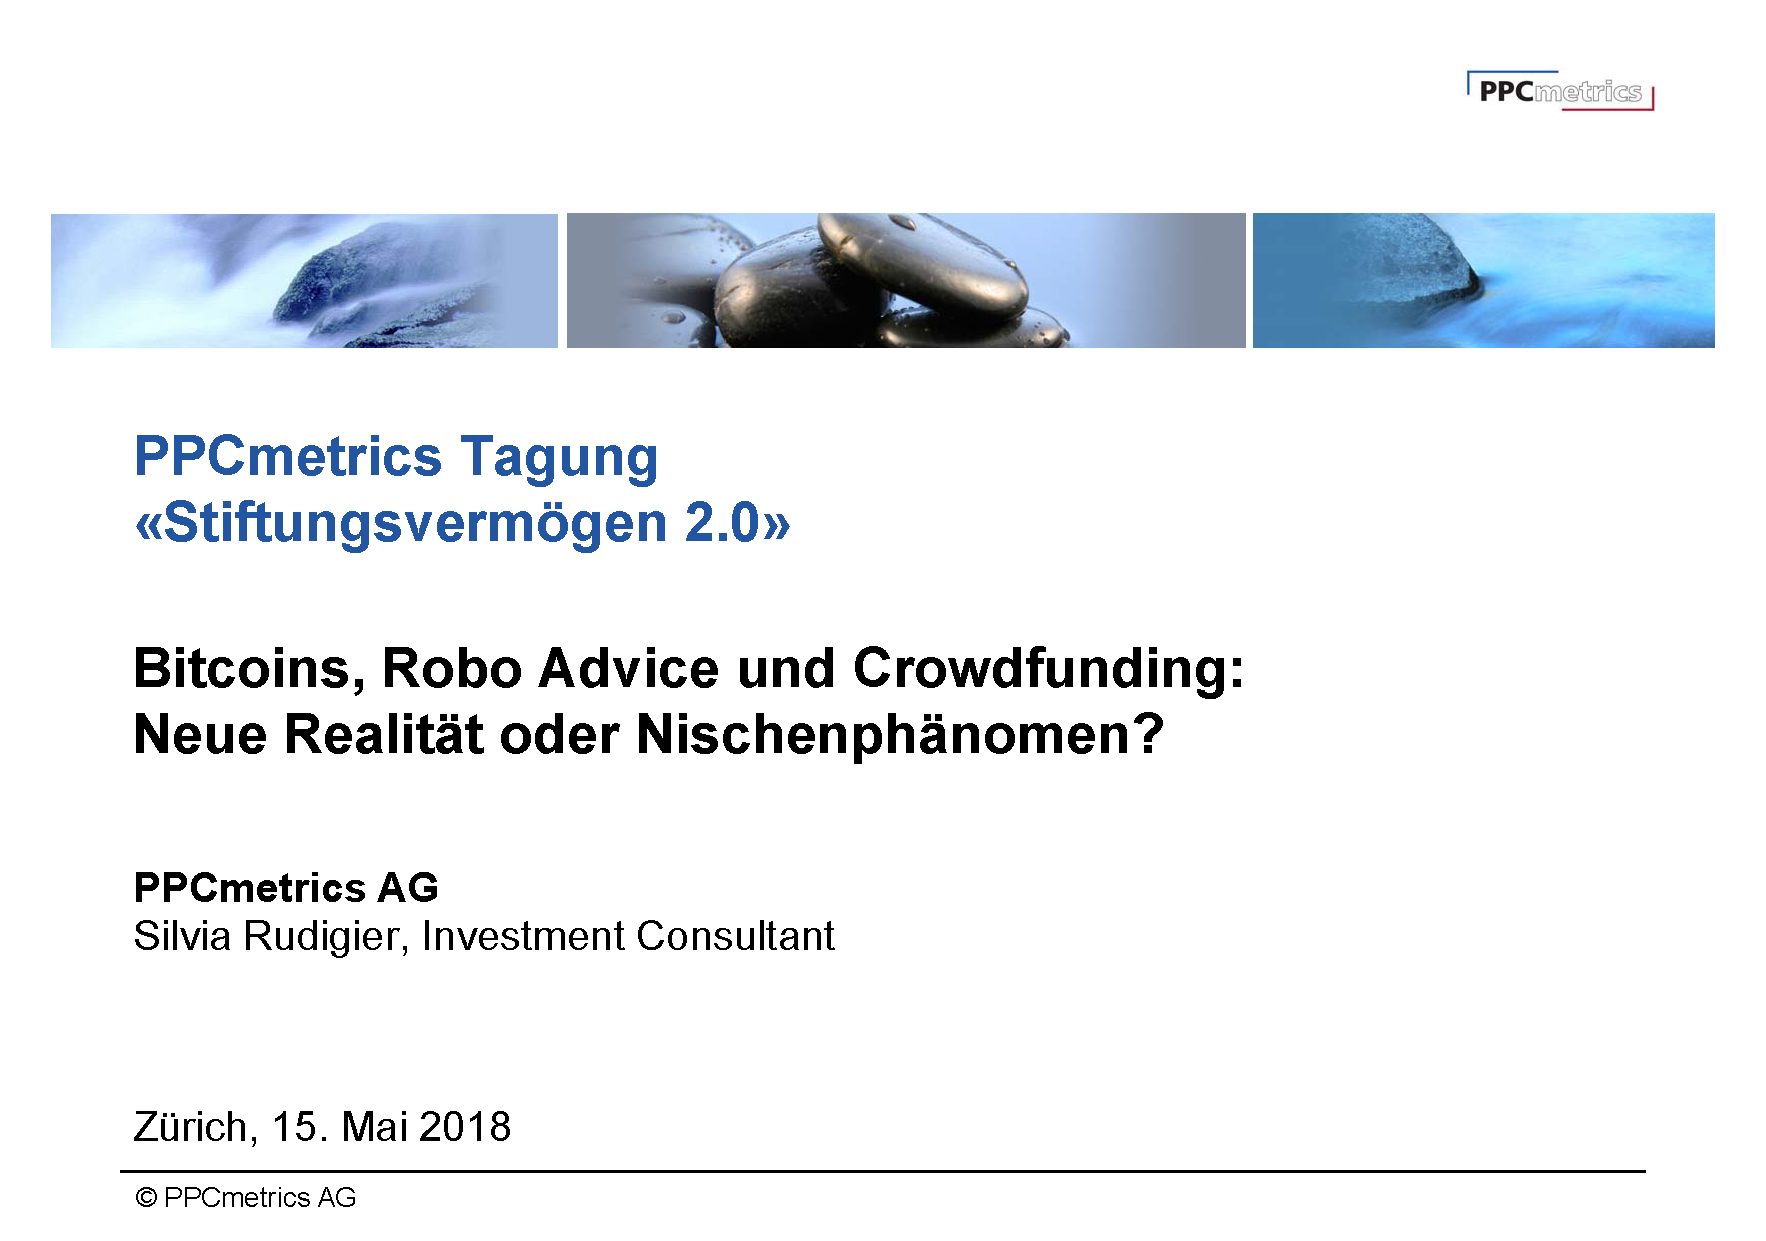 2018-05 Bitcoins Robo Advice und Crowdfunding_Seite_01.png